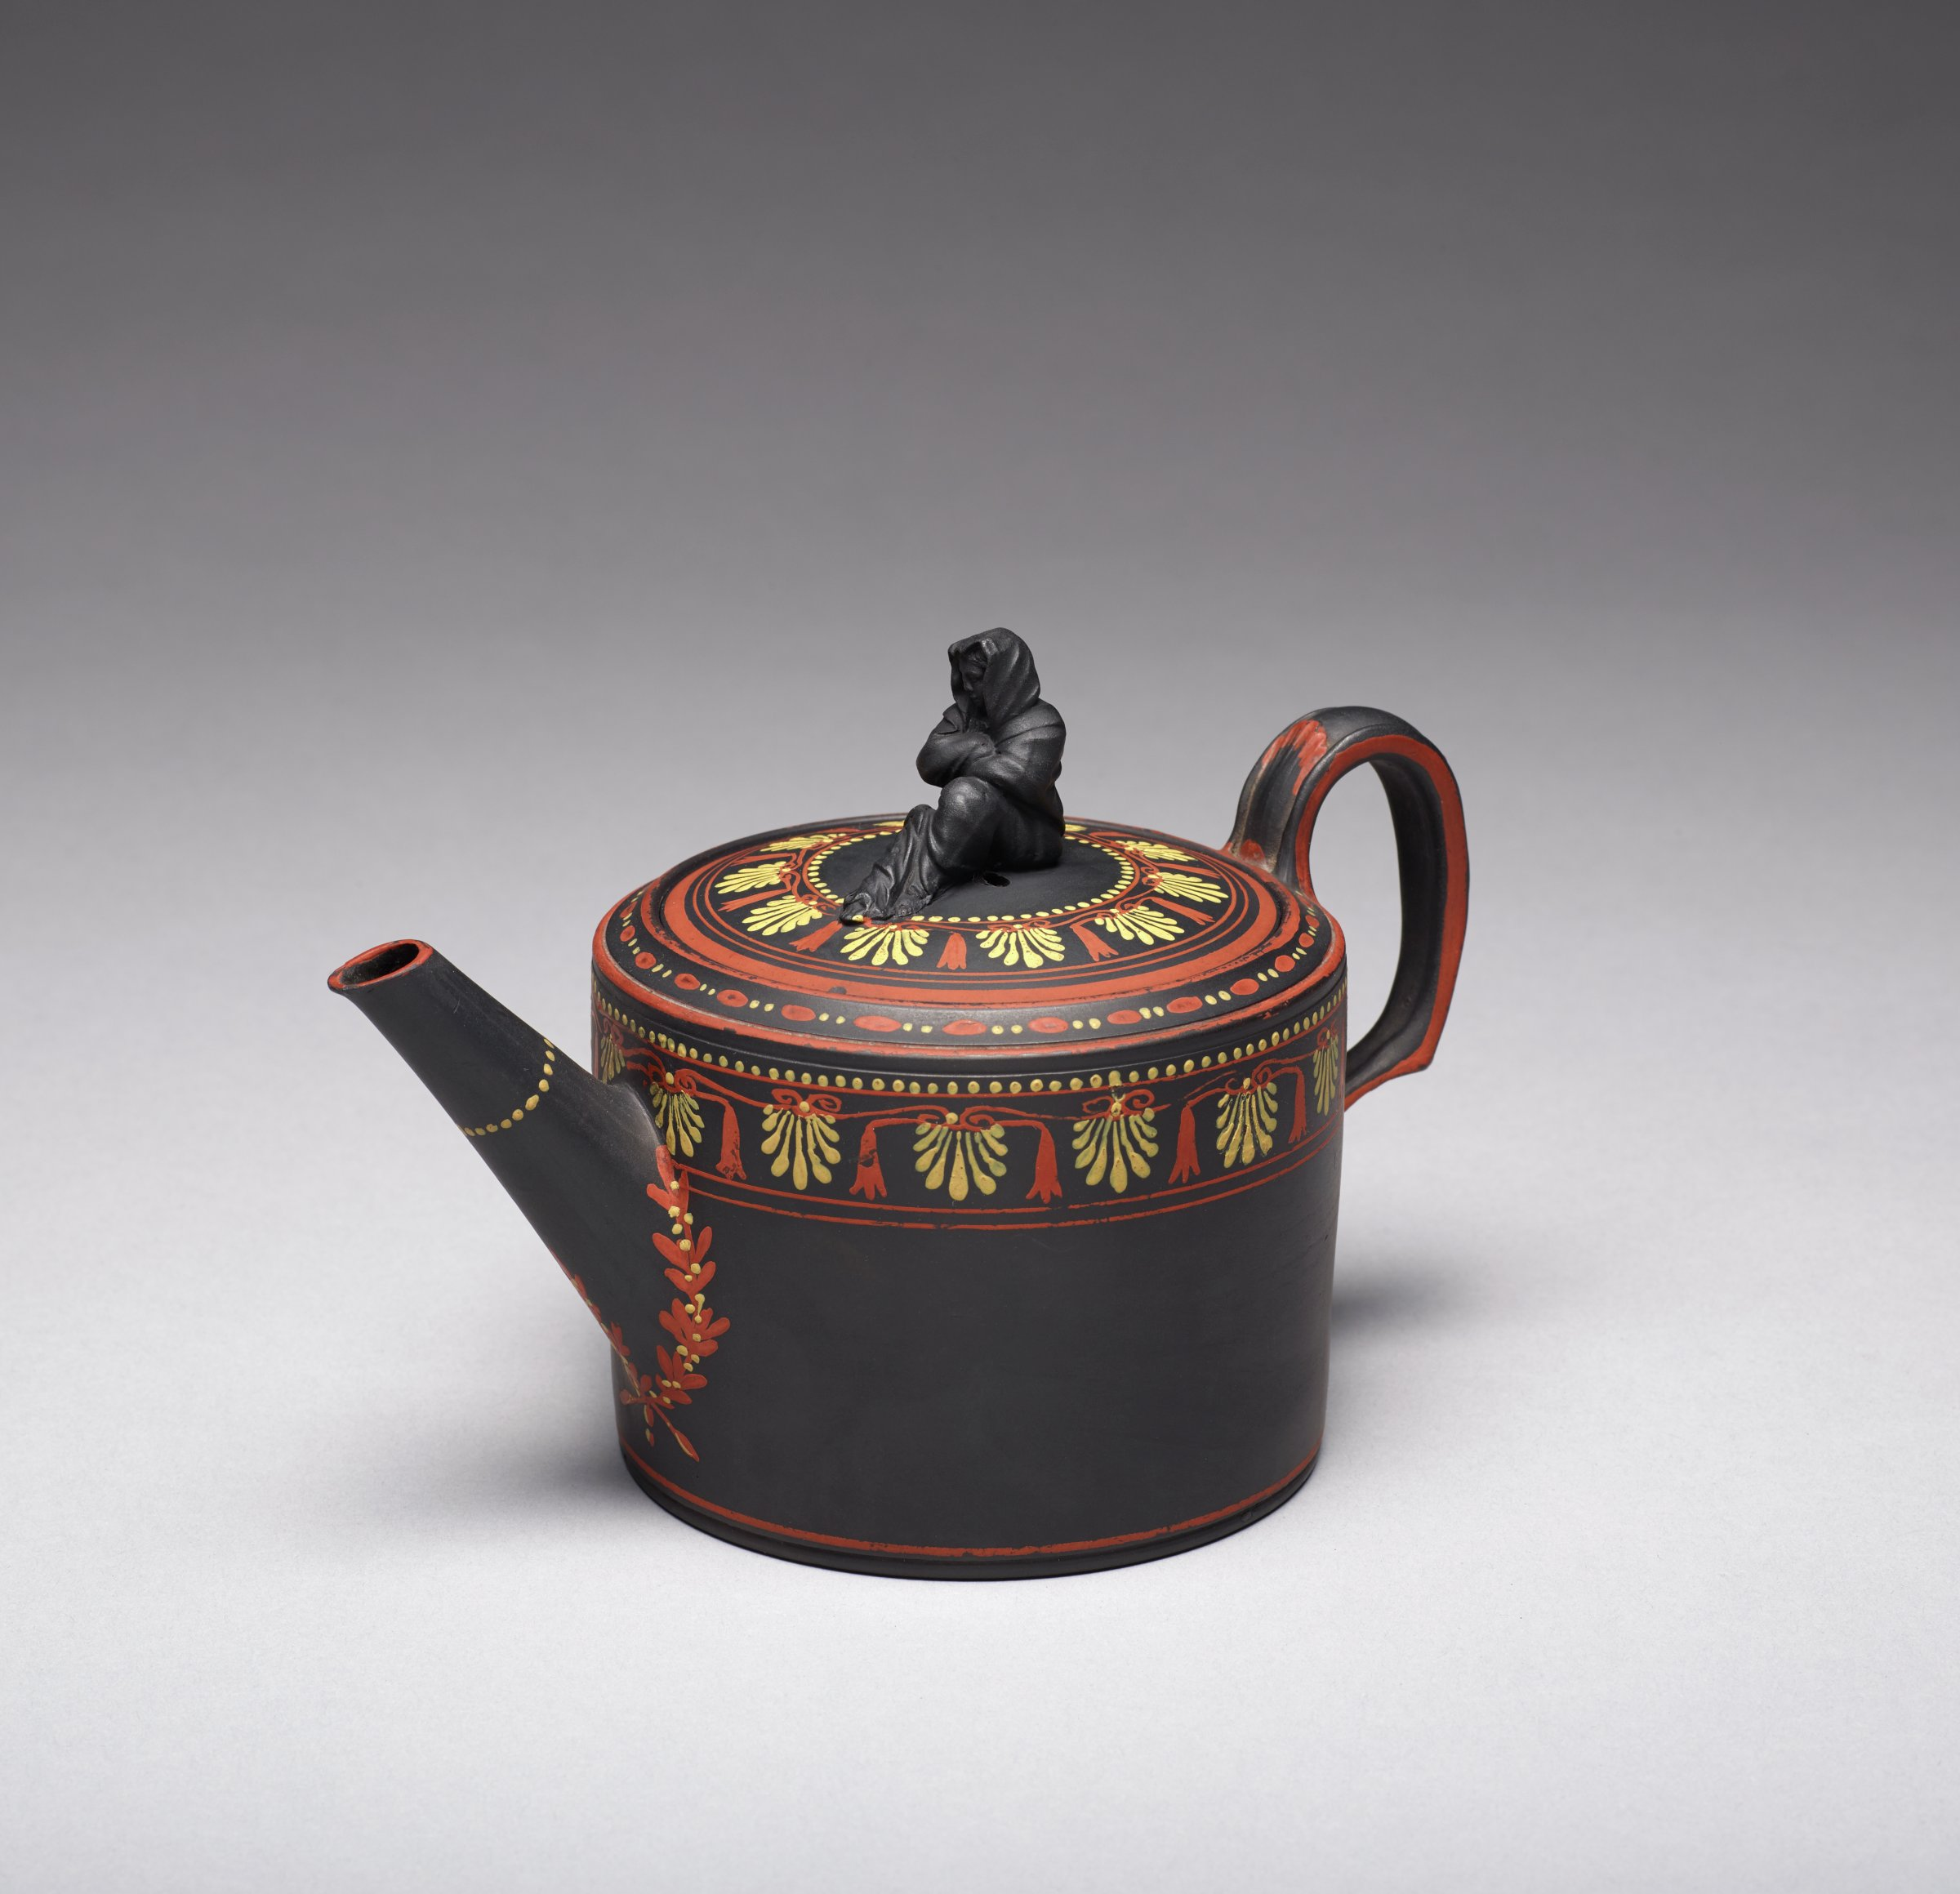 Covered teapot of black basalt with encaustic decoration, the body cylindrical with ear handle and straight spout, around the upper body and on the cover a band of honeysuckle and bell design in red and yellow with a wreath around the spout, the rest of the teapot edged in red, with Sybil or widow finial, the interior glazed and with pierced strainer.